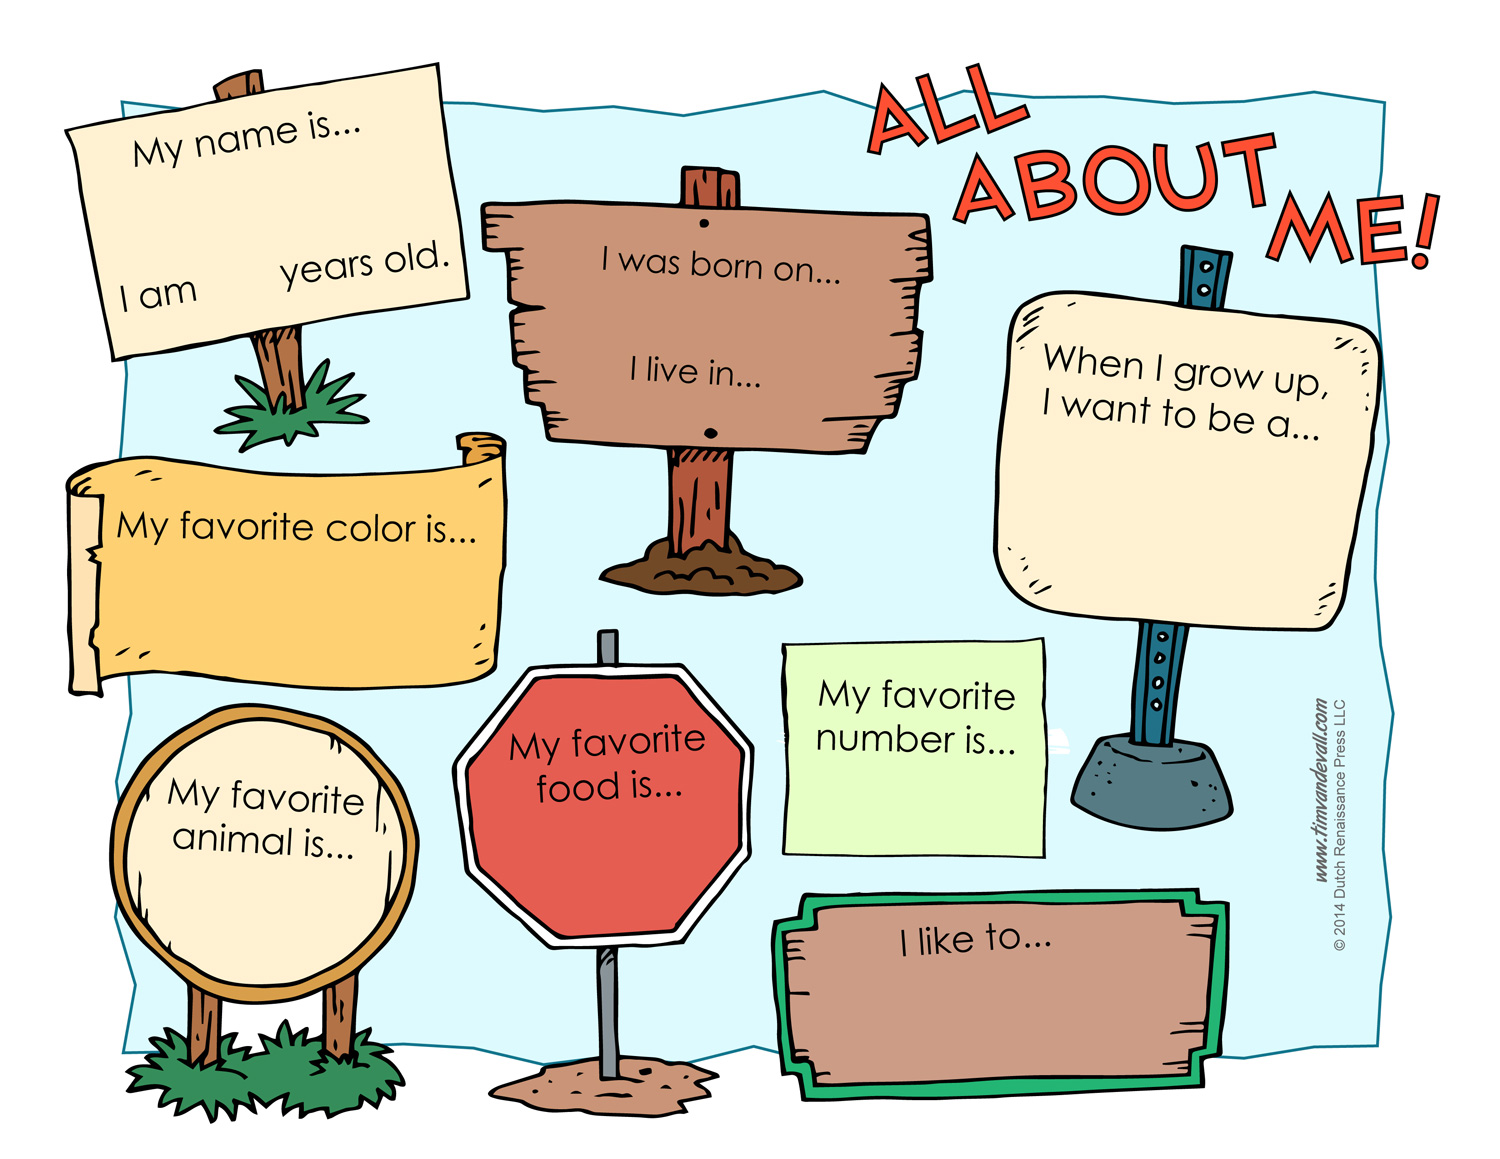 Worksheets All About Me Worksheet all about me worksheet printable printable